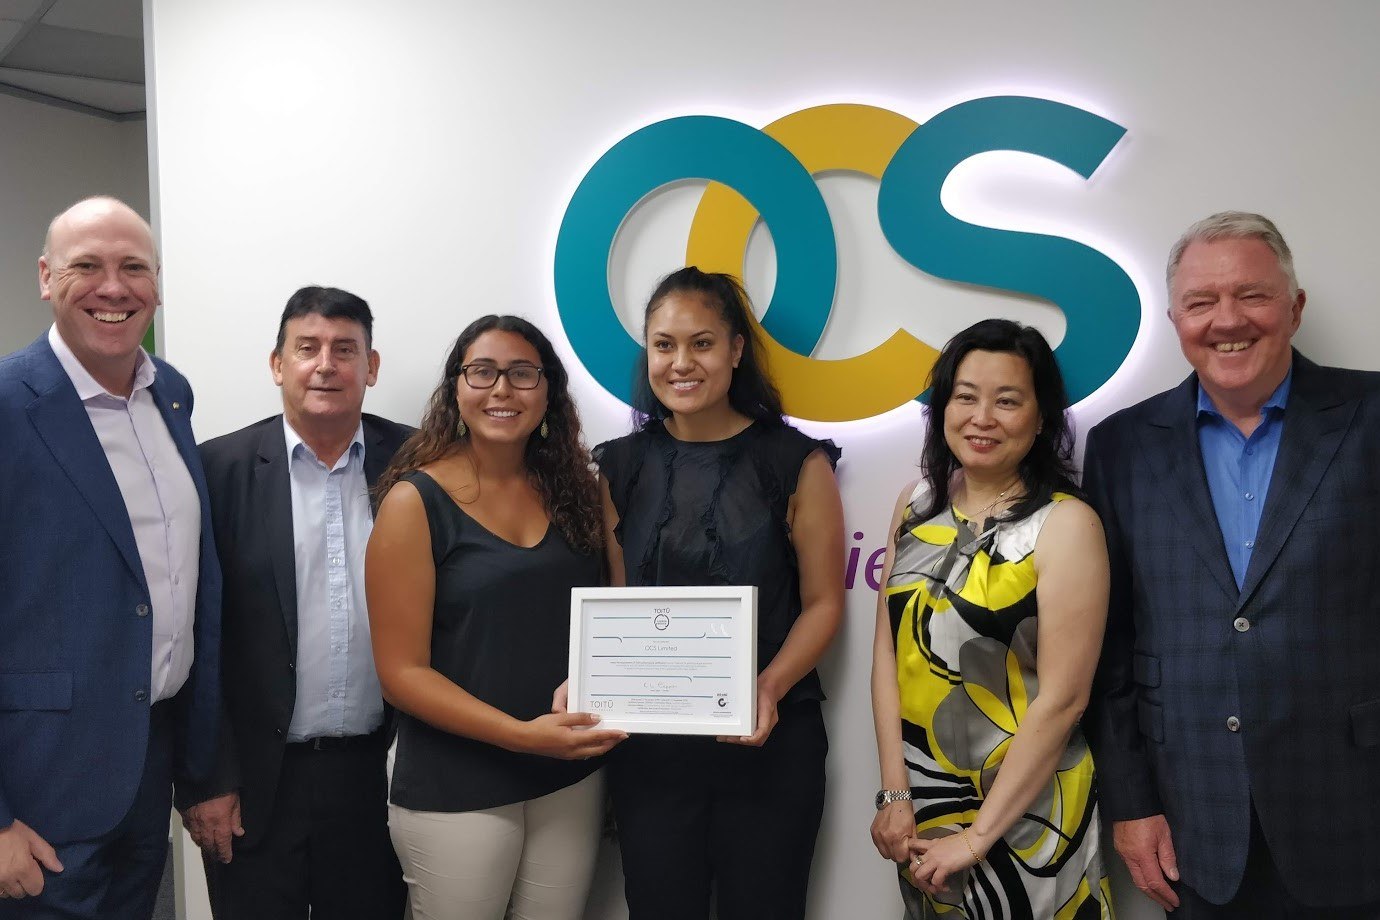 OCS team celebrating their Toitū carbonzero certification